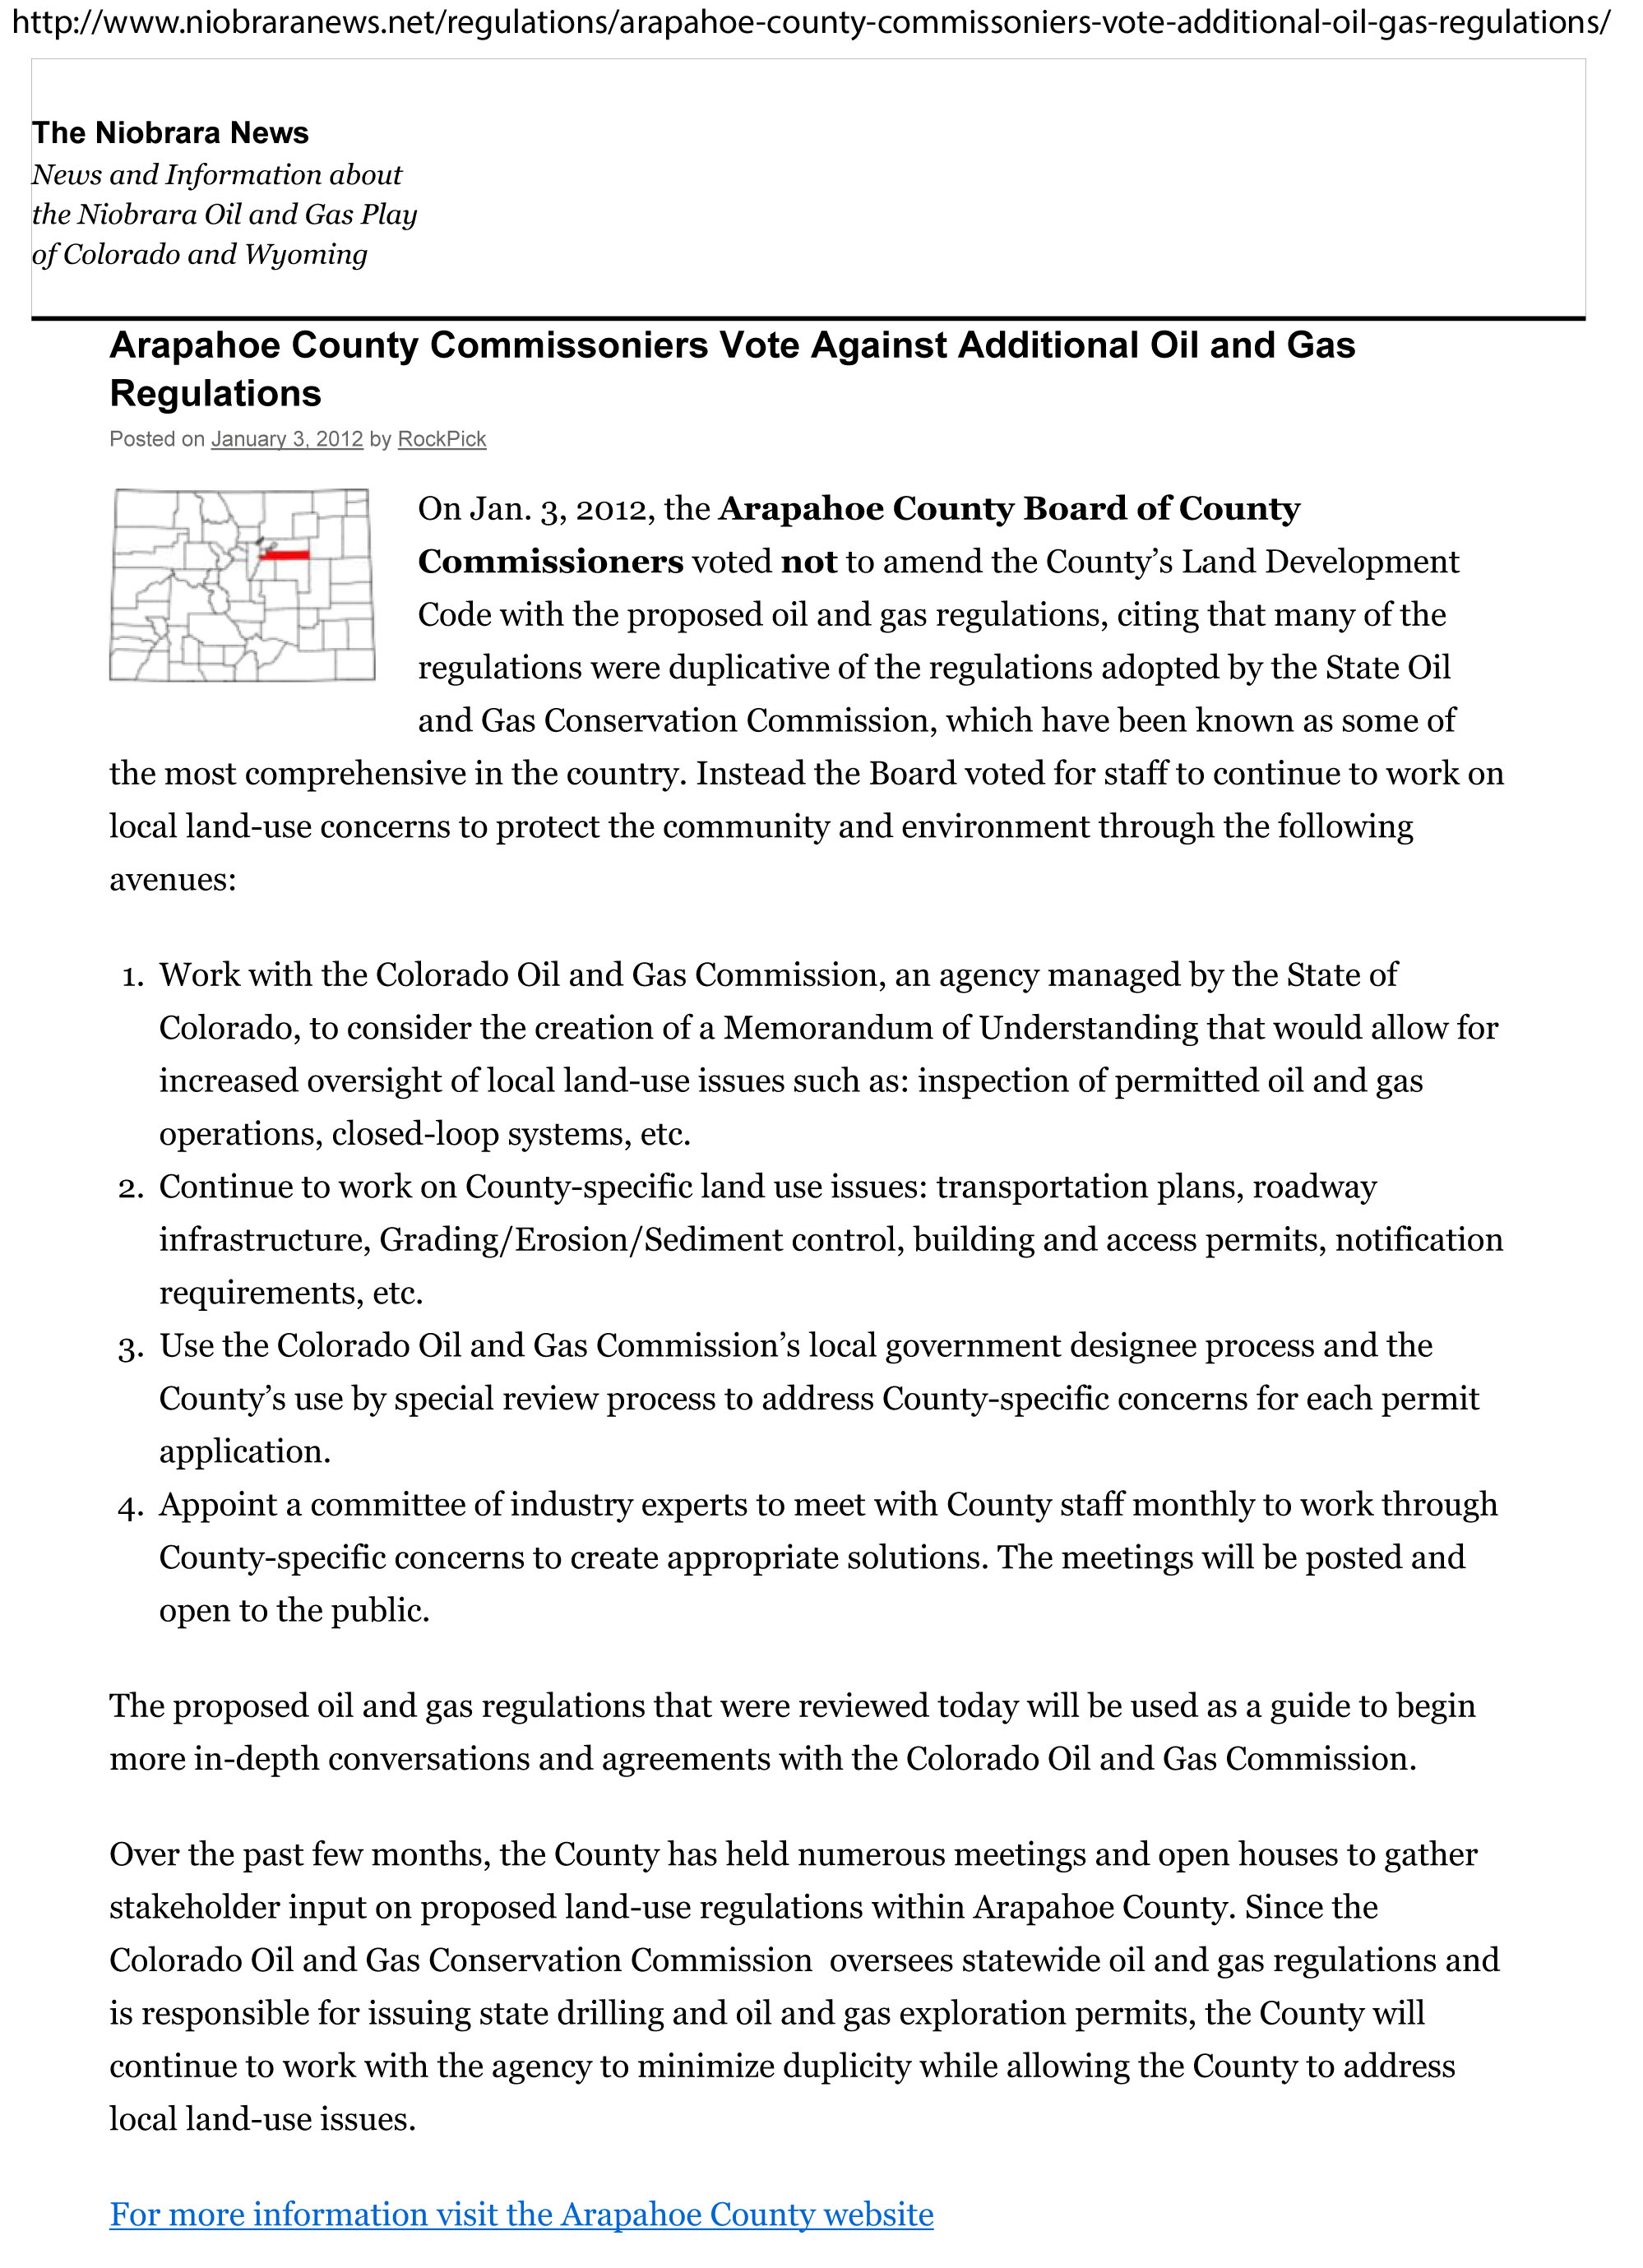 Arapahoe votes down additional oil and gas regs - 1/3/2012